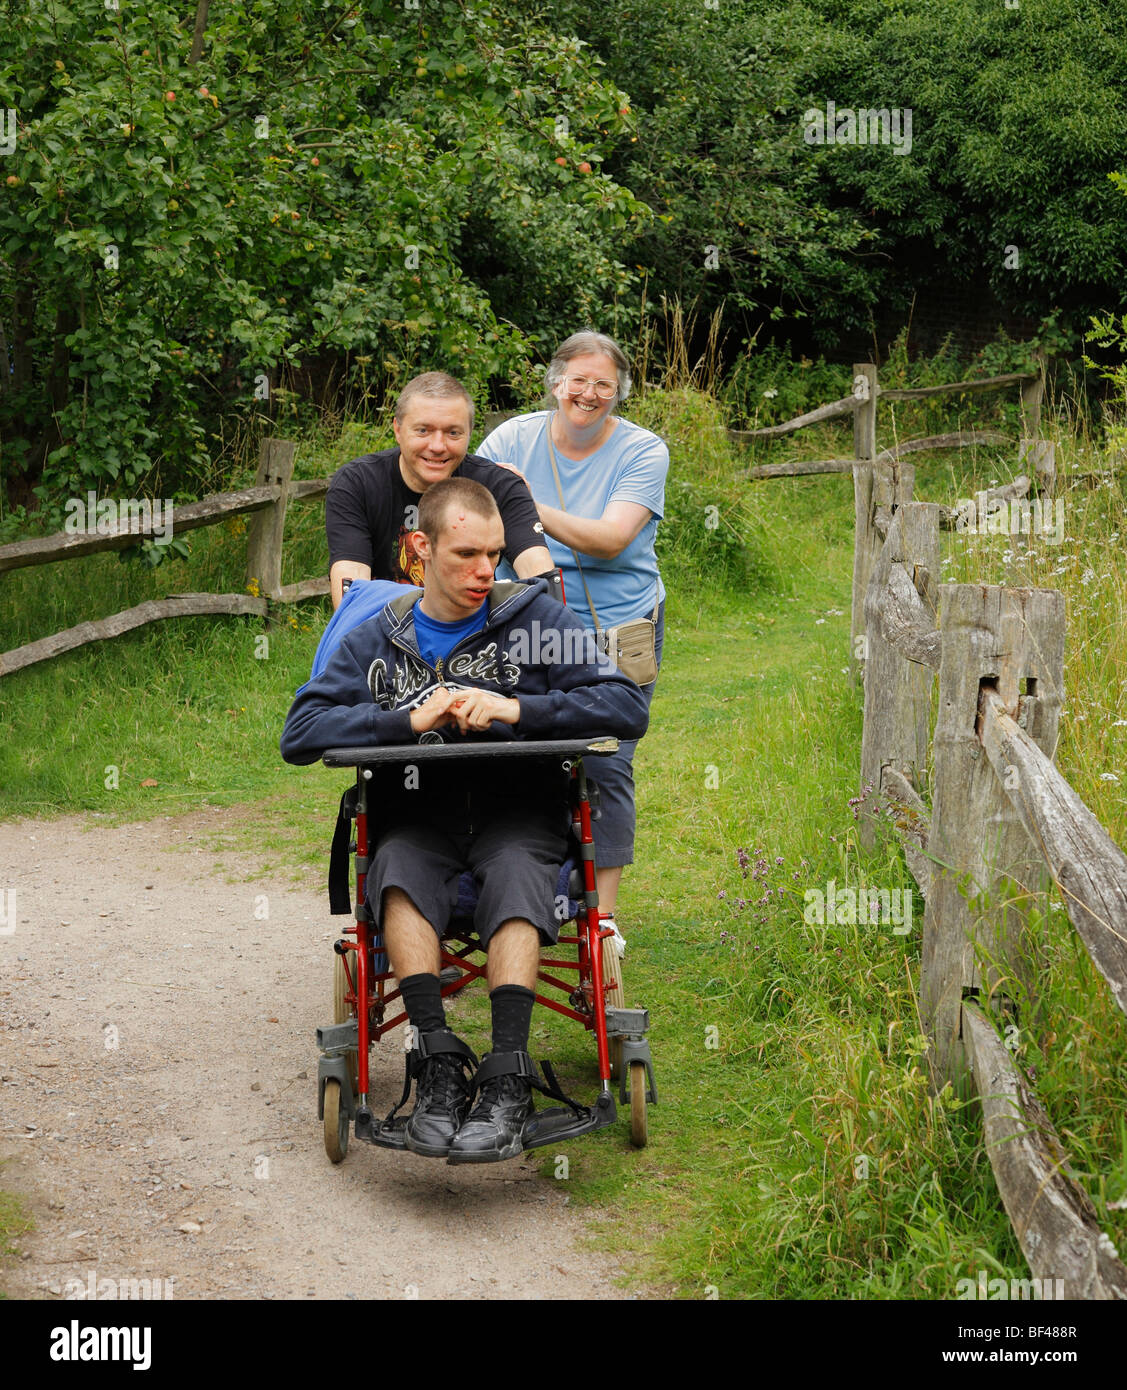 Disabled boy being pushed along by loving parents. - Stock Image